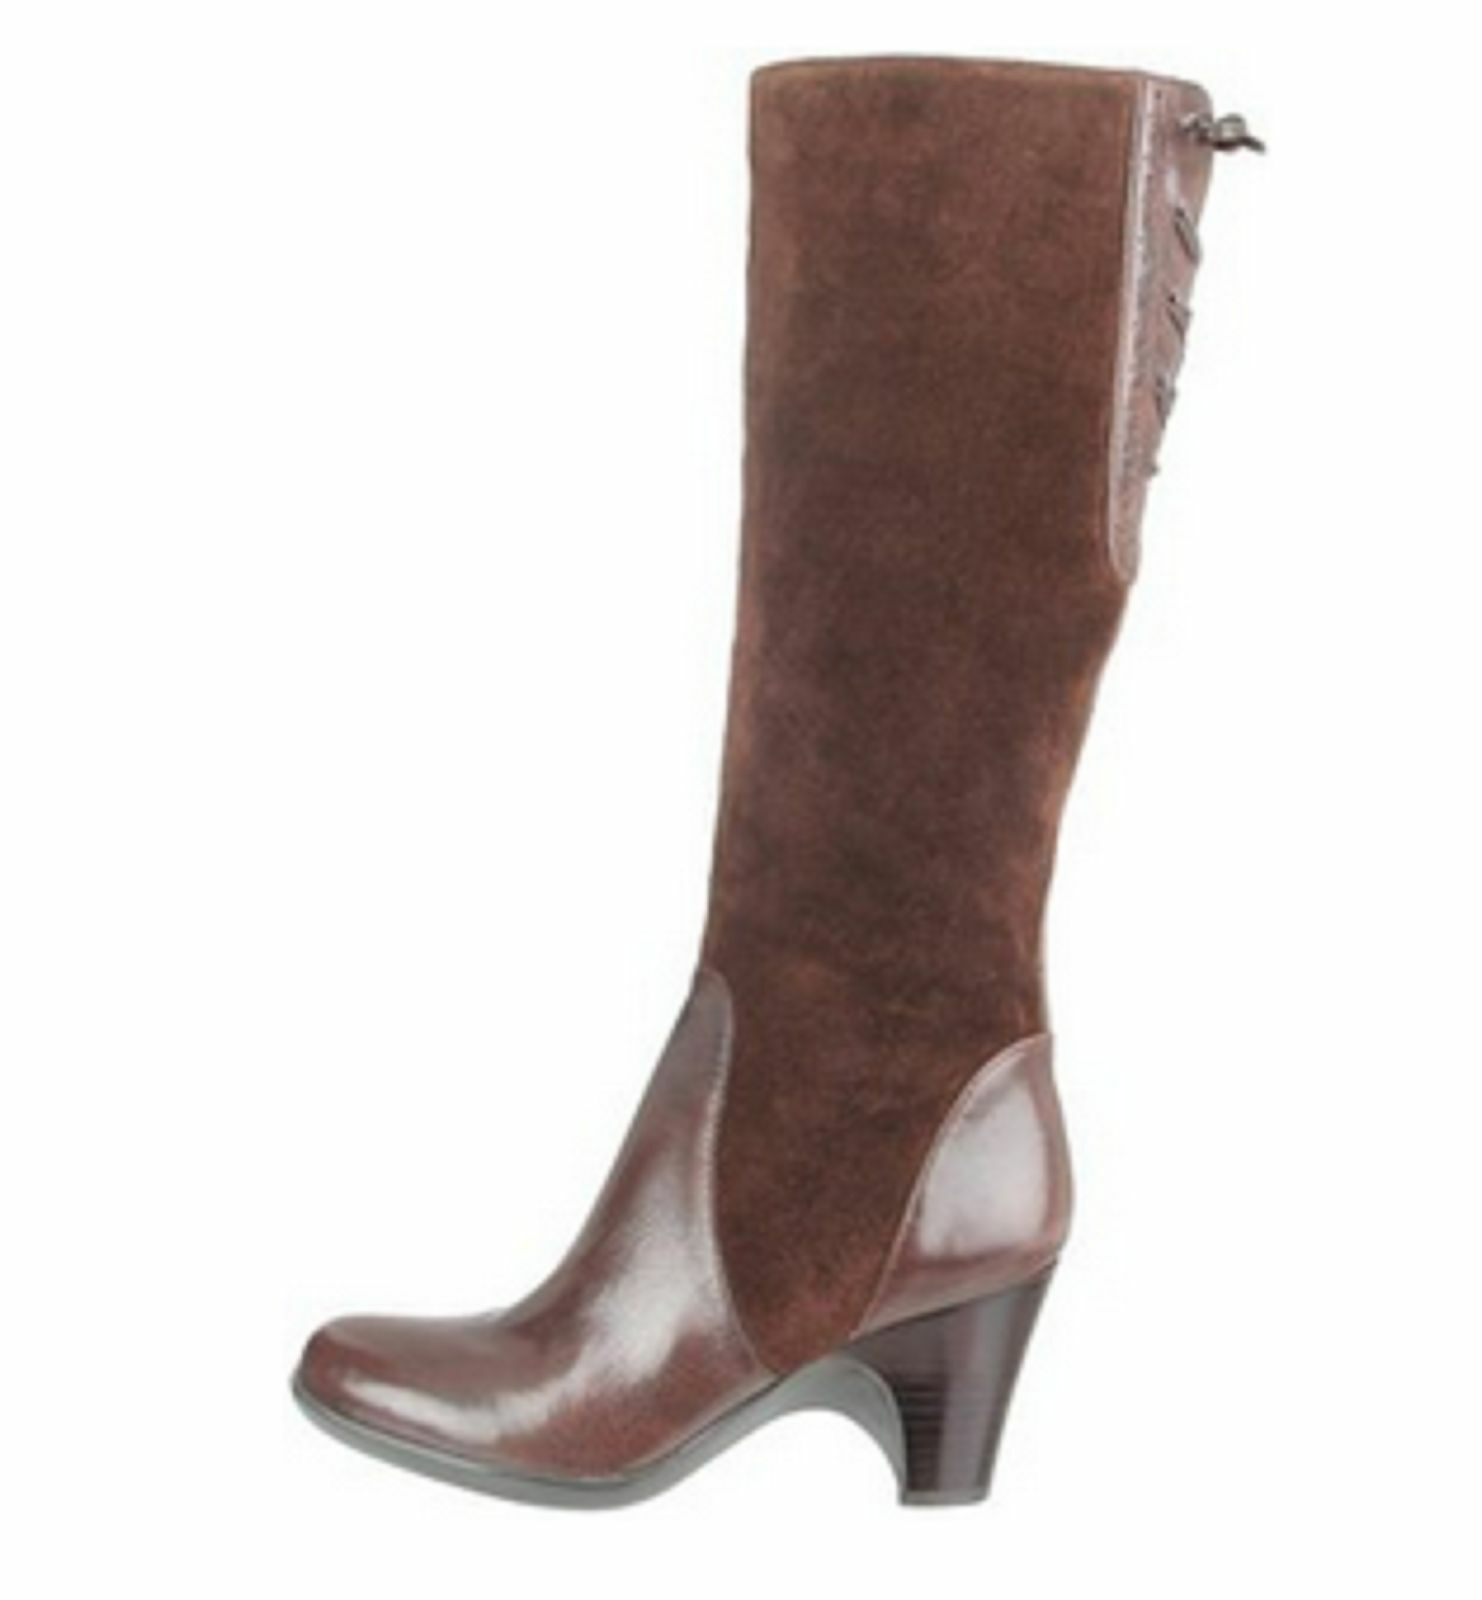 Naturalizer Women's Milano Boot Brown  Size 9 M US